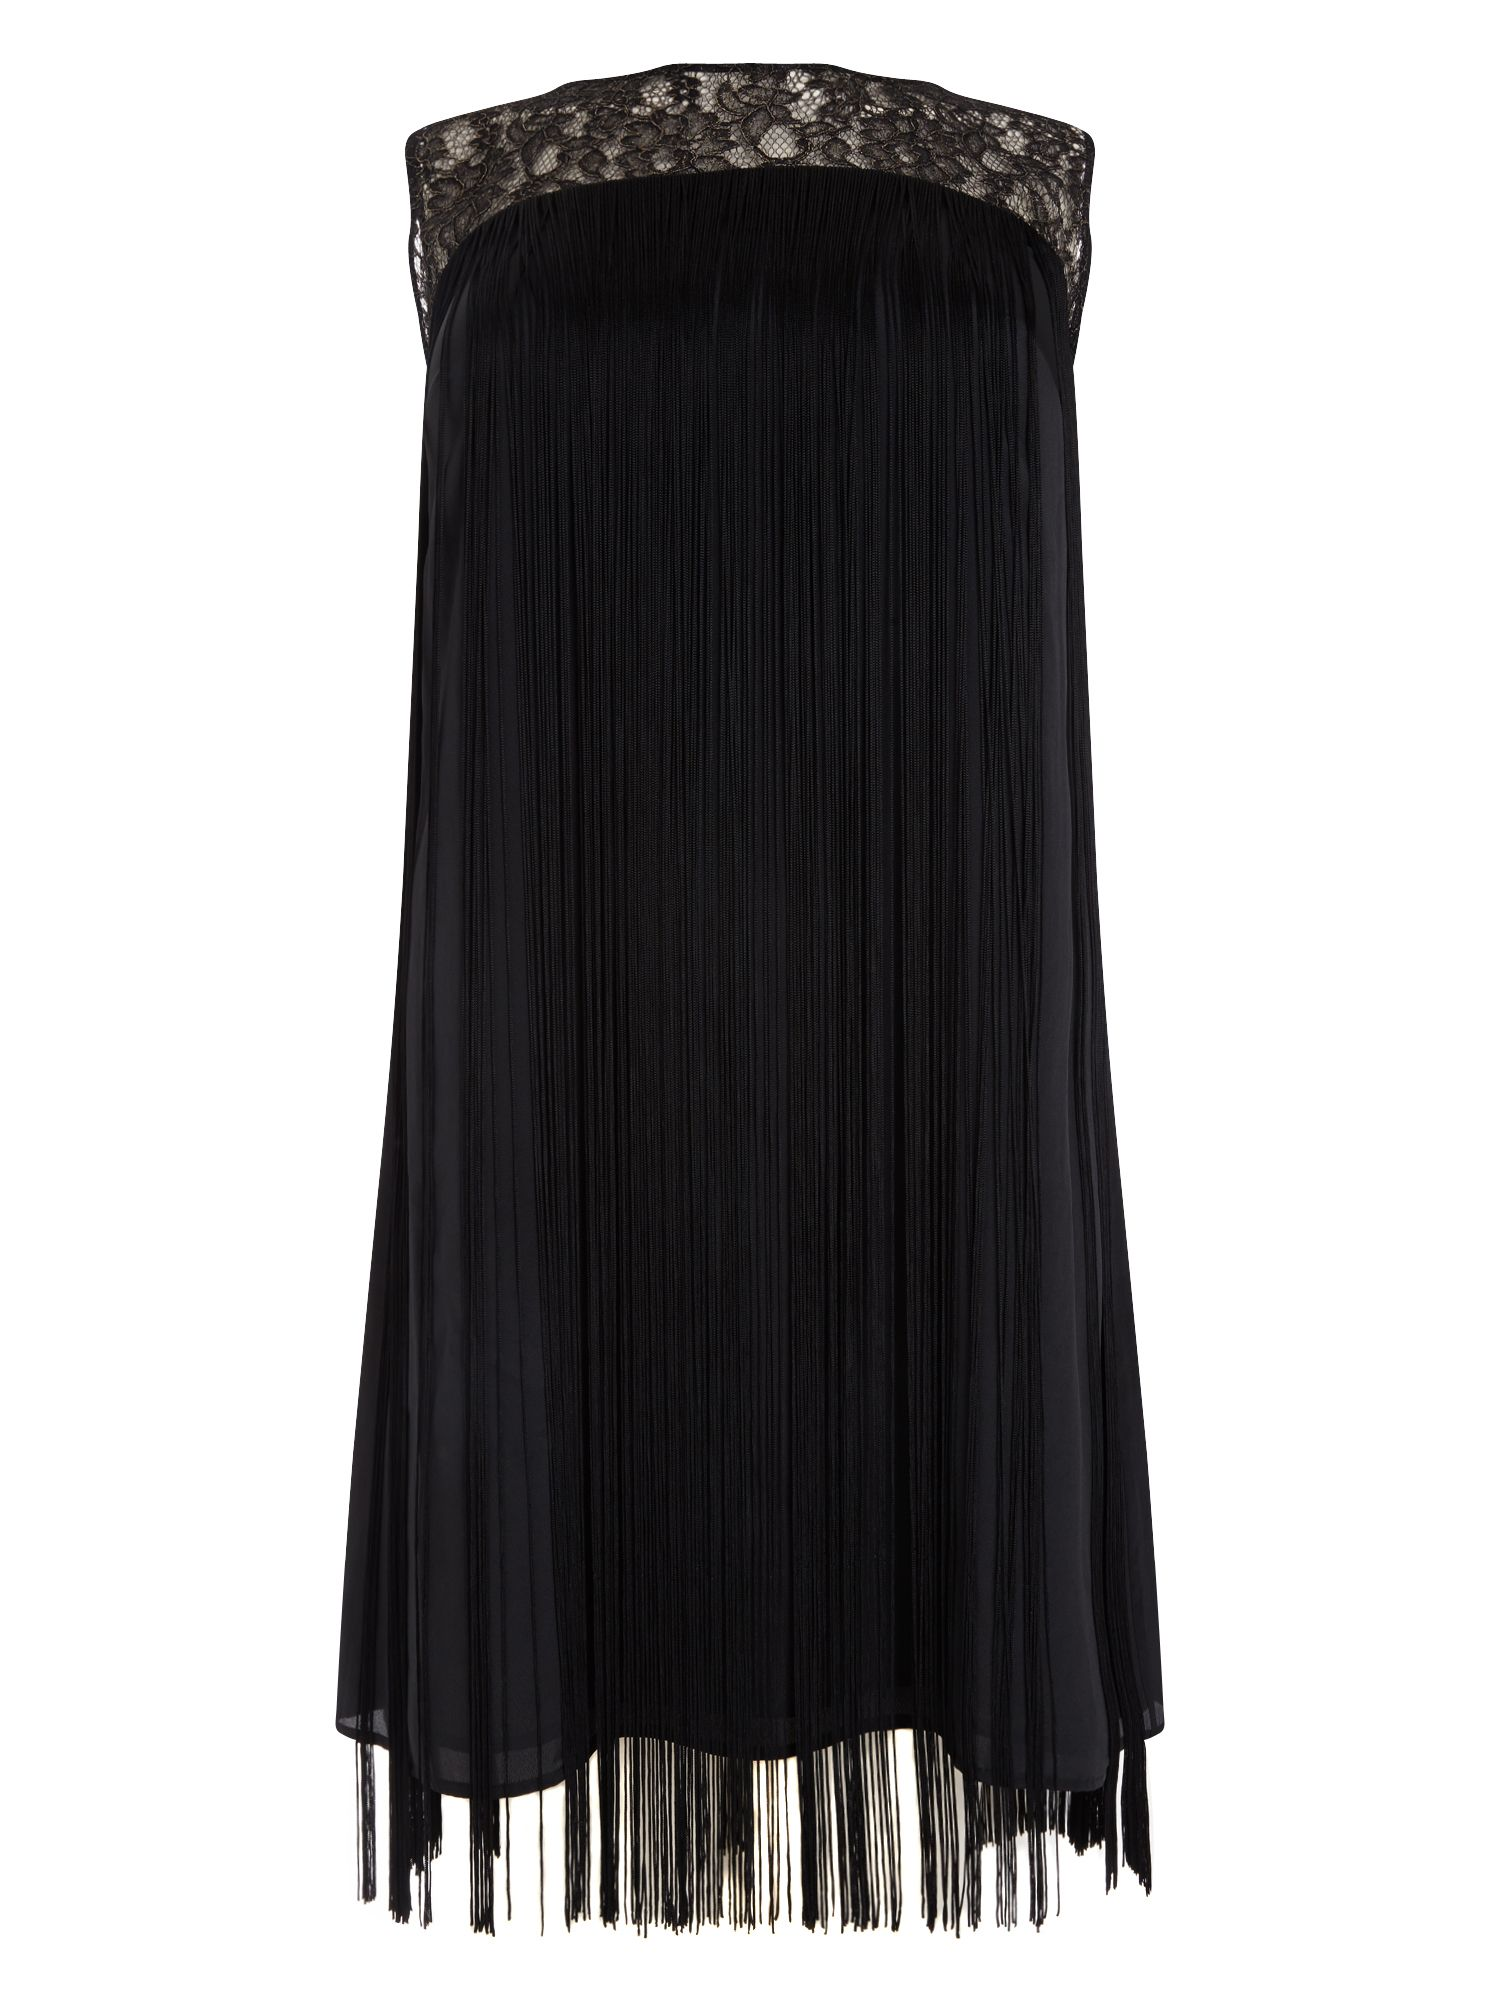 Studio 8 Fiamma fringe dress, Black